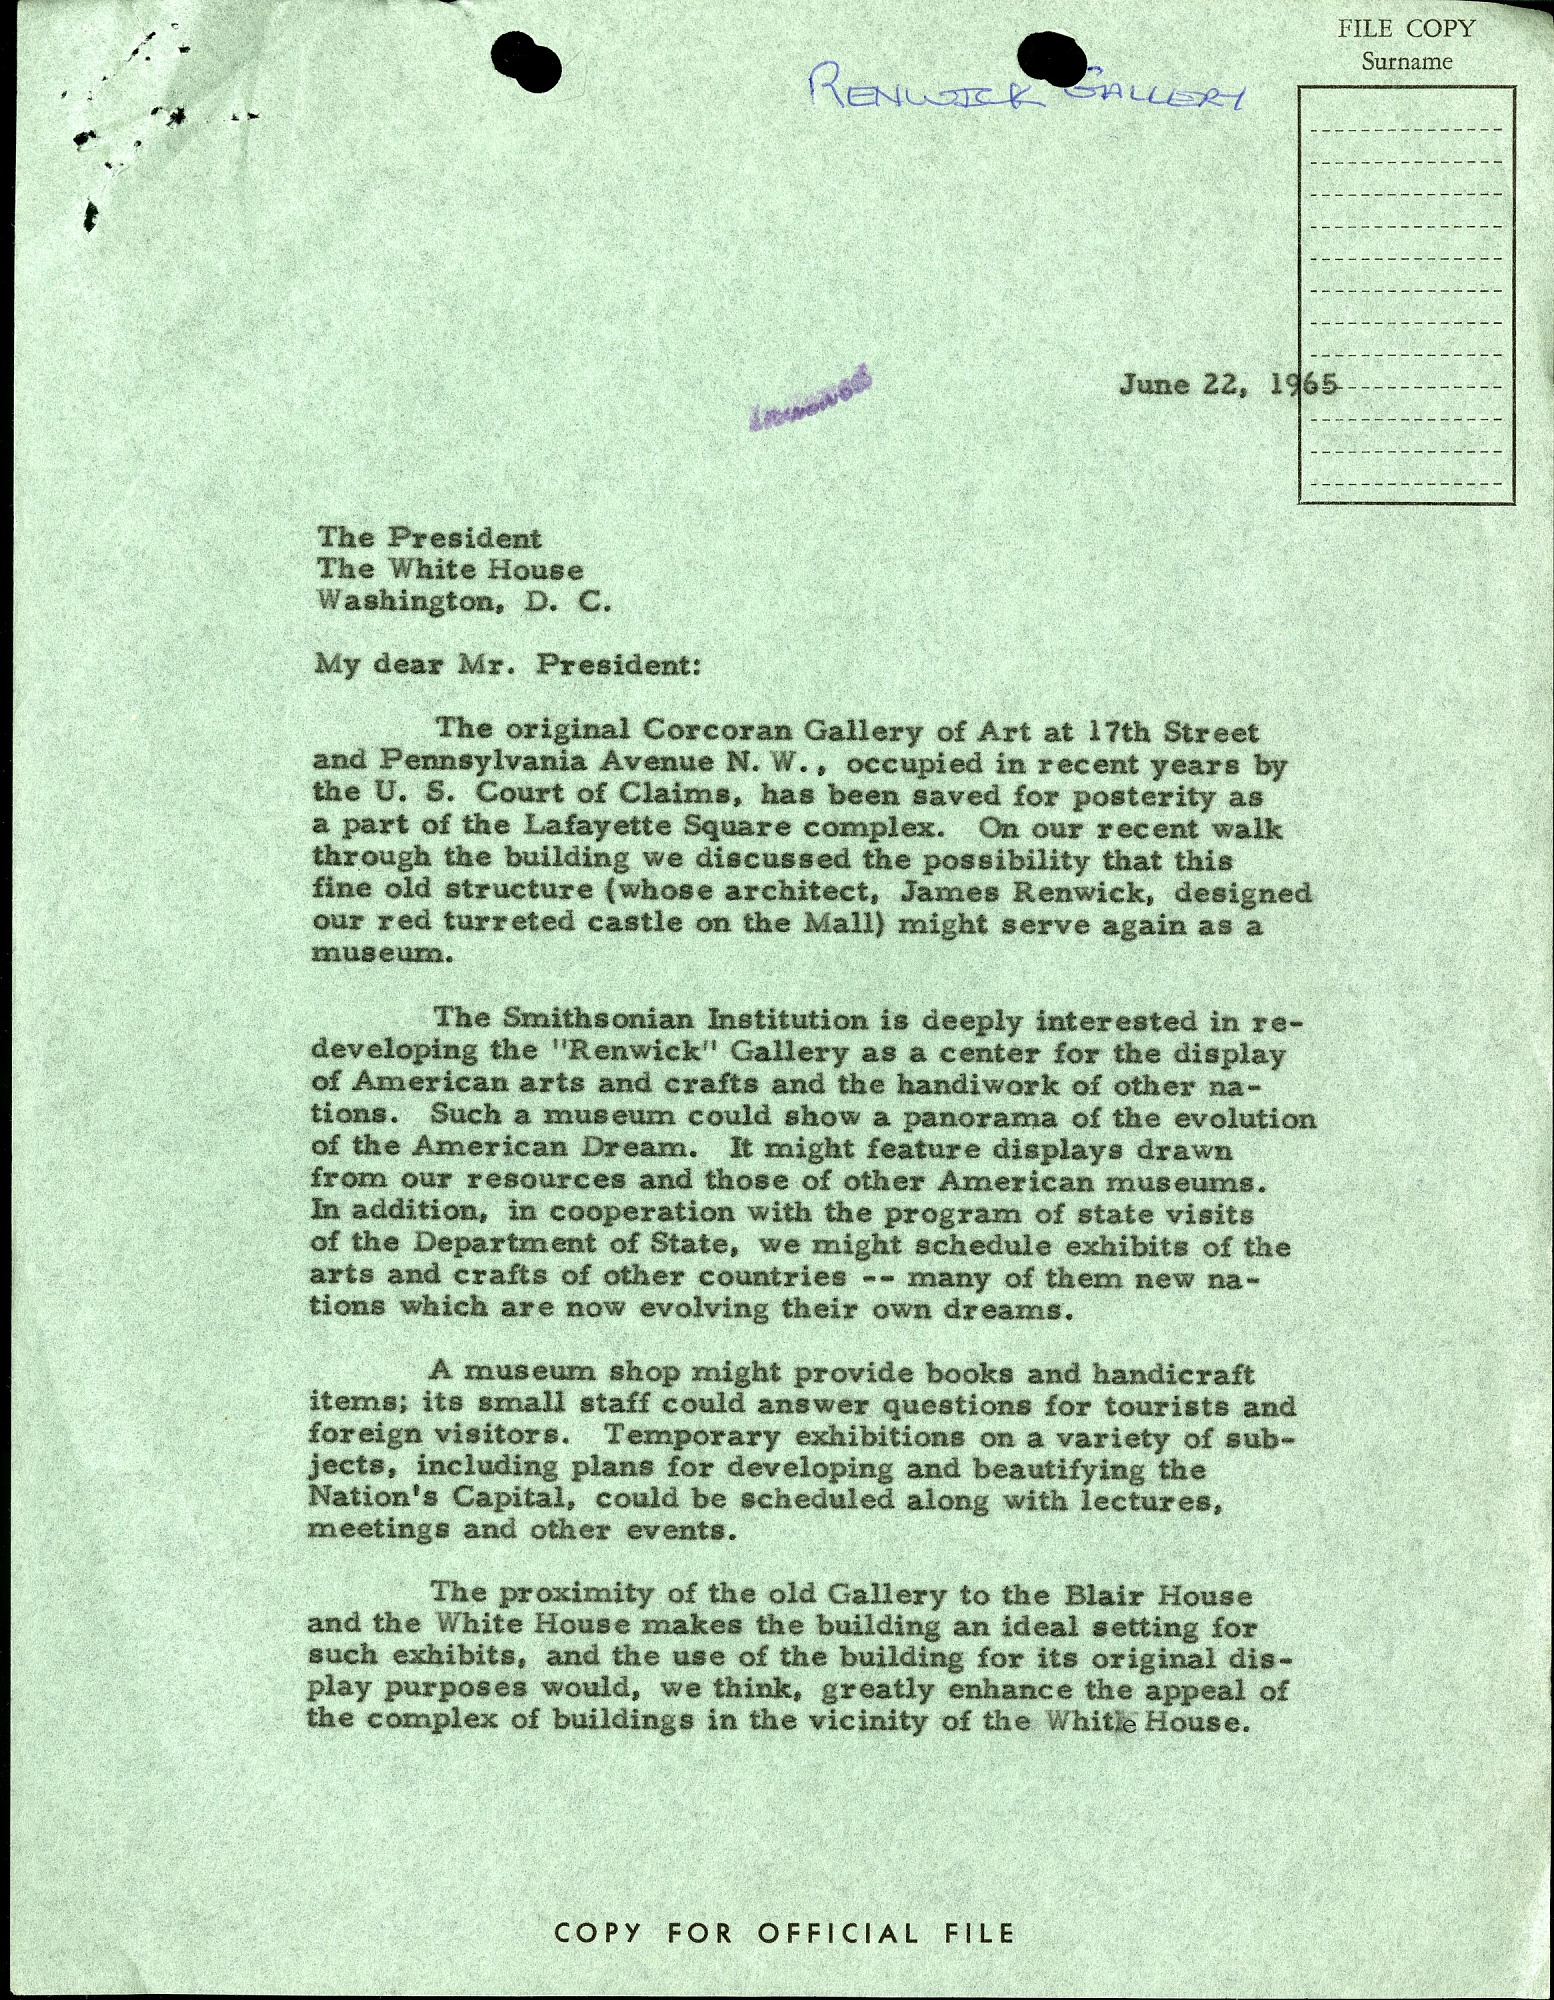 Jun 23 Letter S. D. Ripley to Lyndon Johnson, June 22, 1965